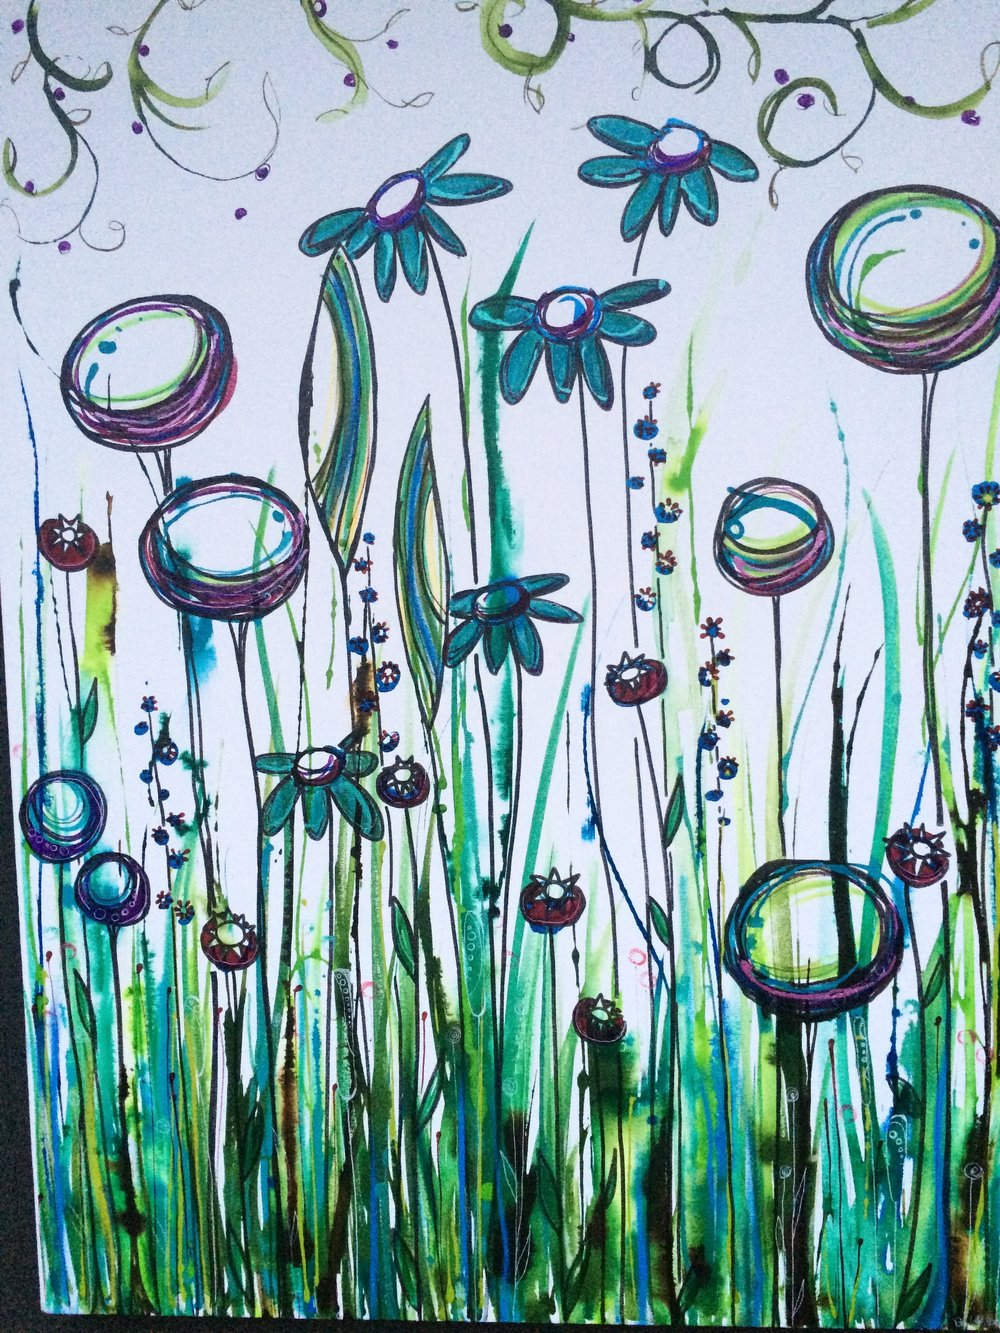 "Blue Flowers 24"" x 36"" on canvas $375  SOLD"